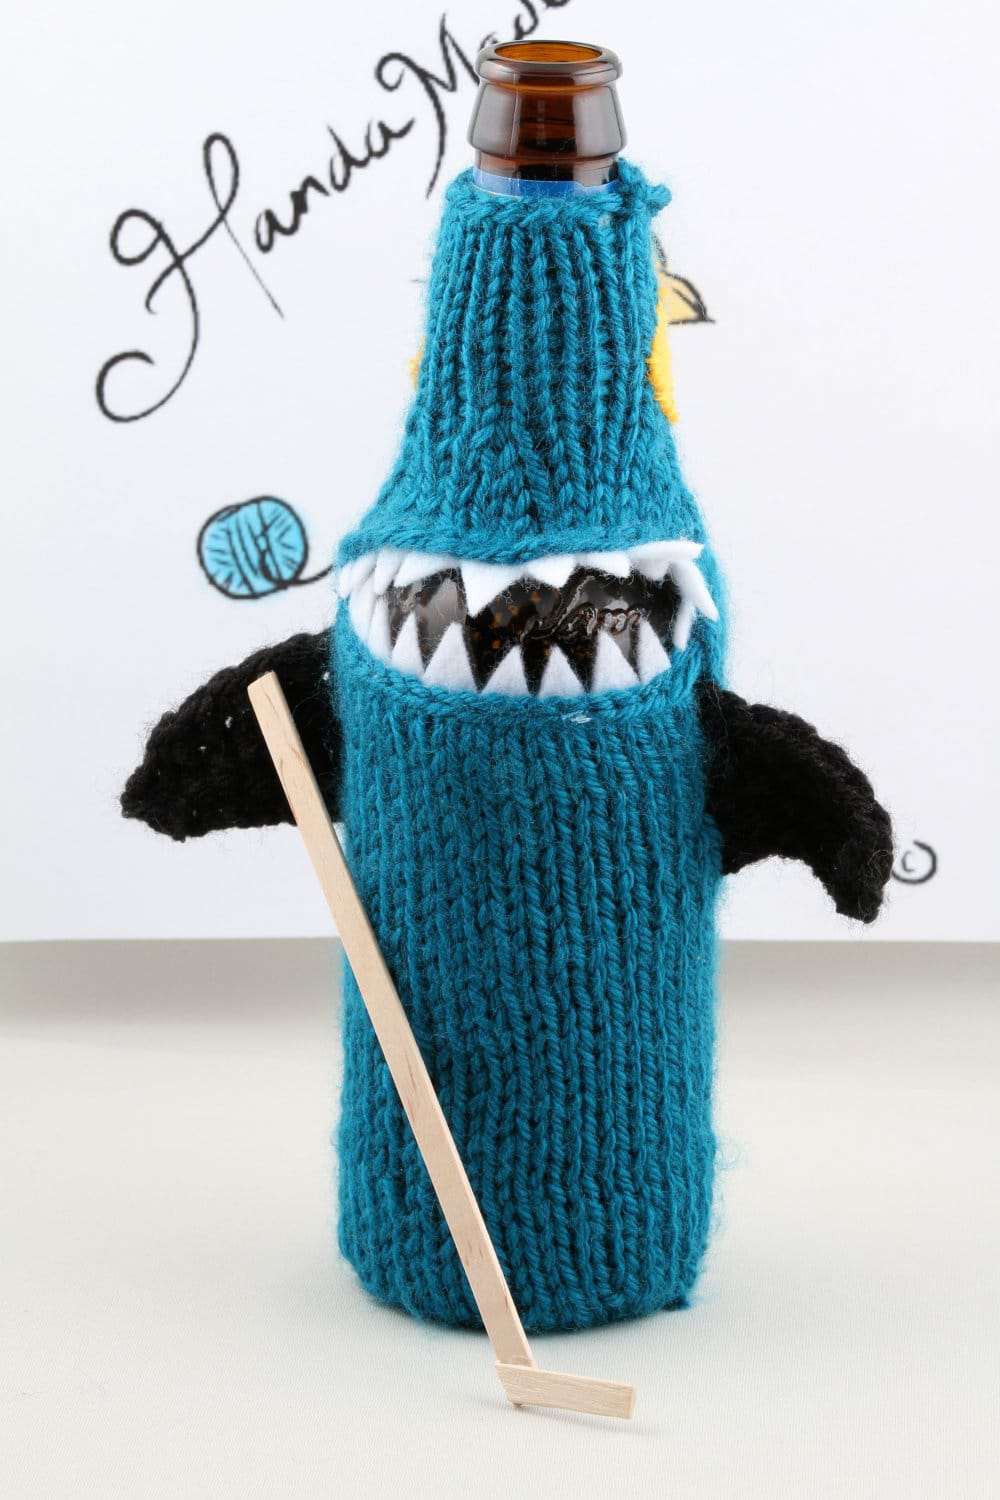 Shark Costume For Your Beer Bottle: The Koozie With Attitude